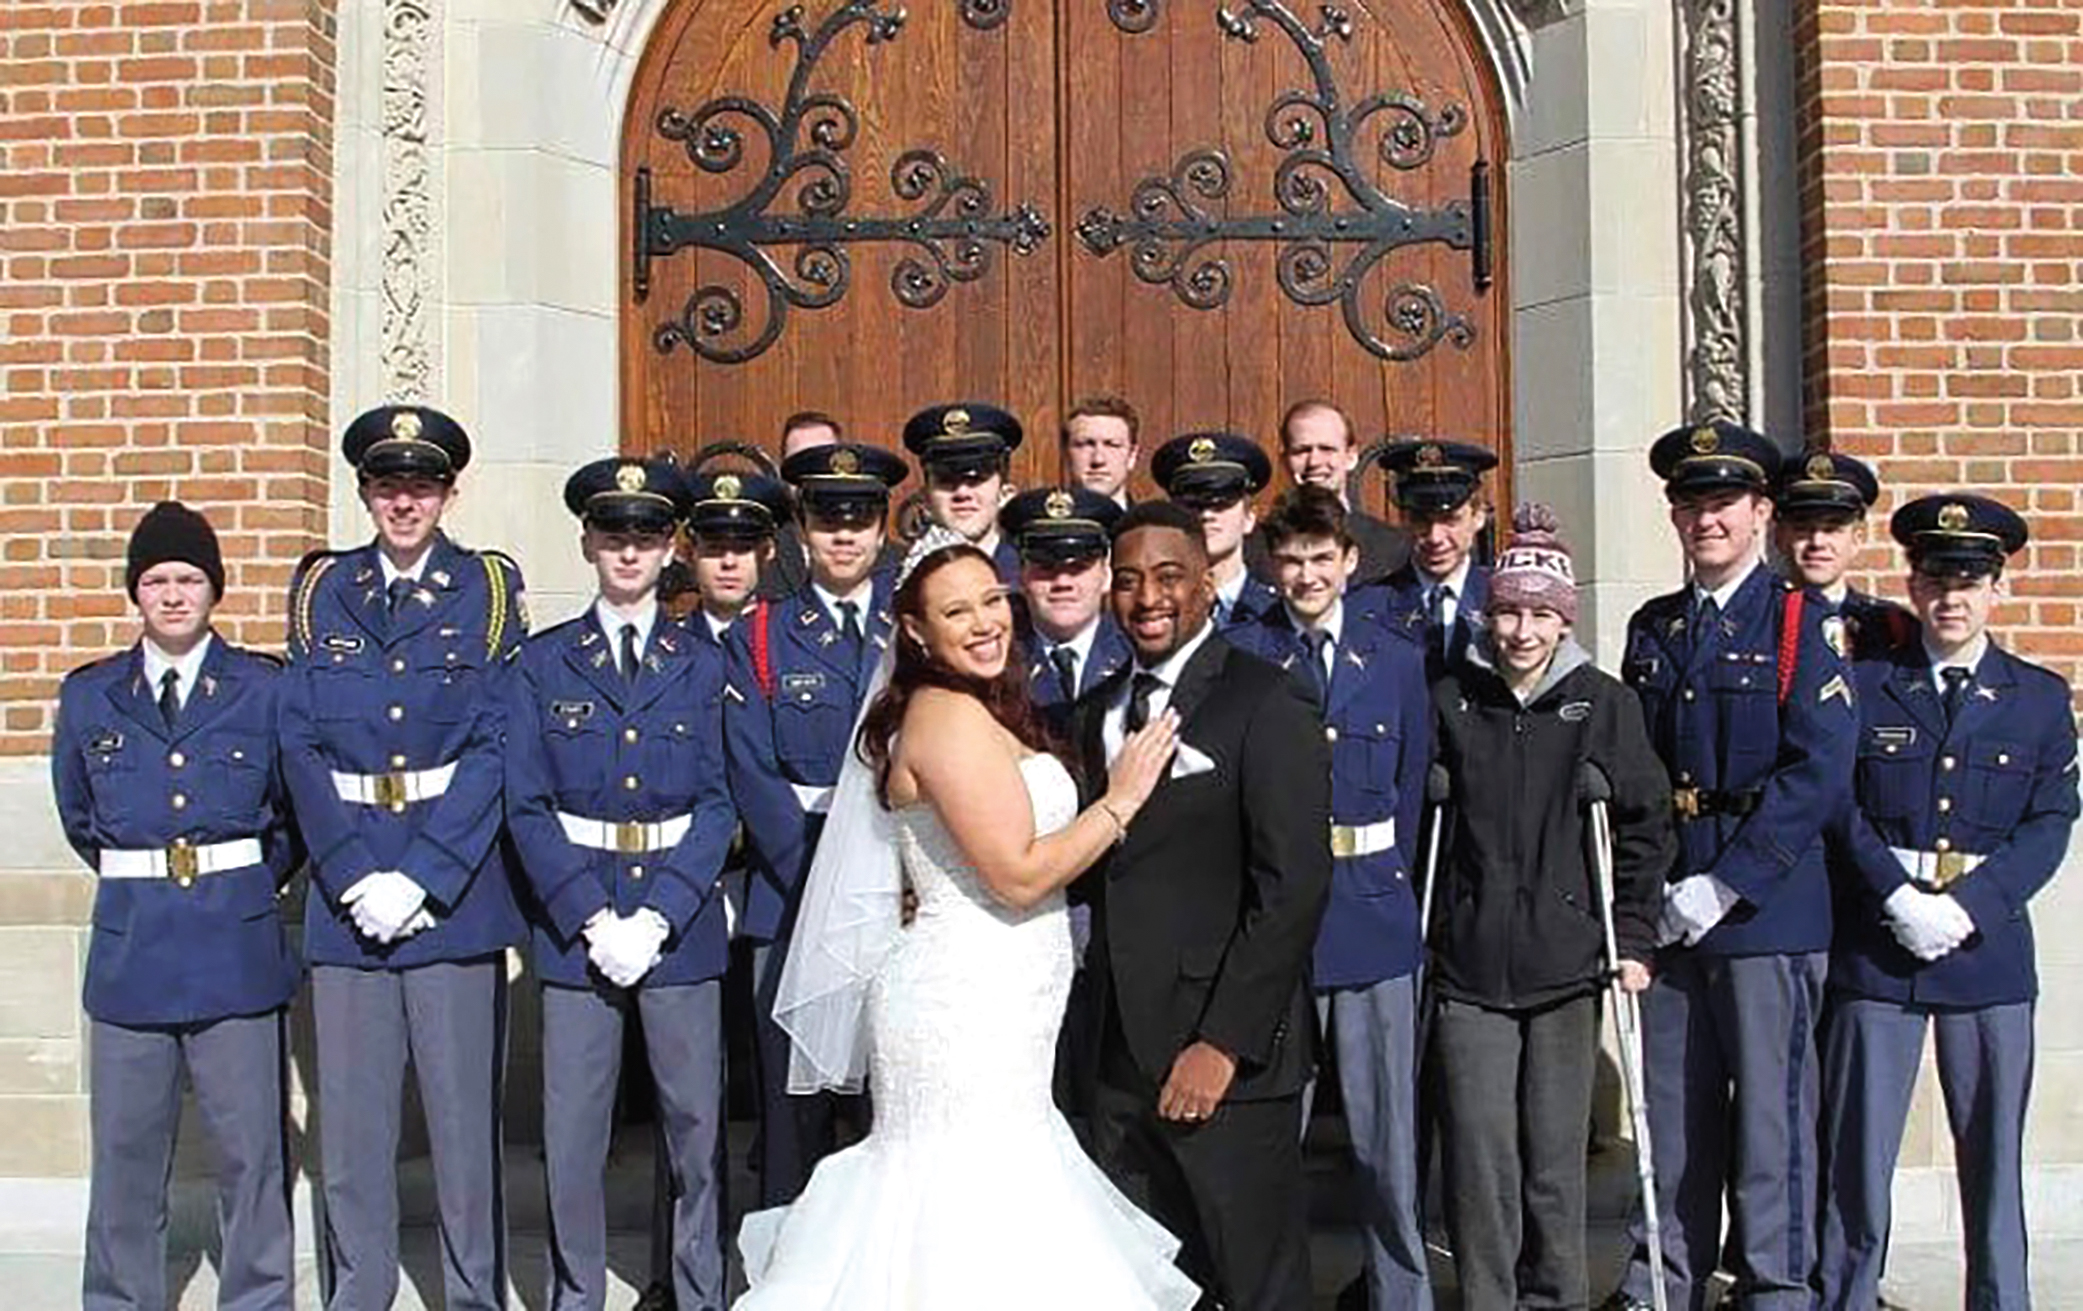 Jacci (Cousins) Plaisir '10 married Paul Plaisir '11 in Culver, Ind.